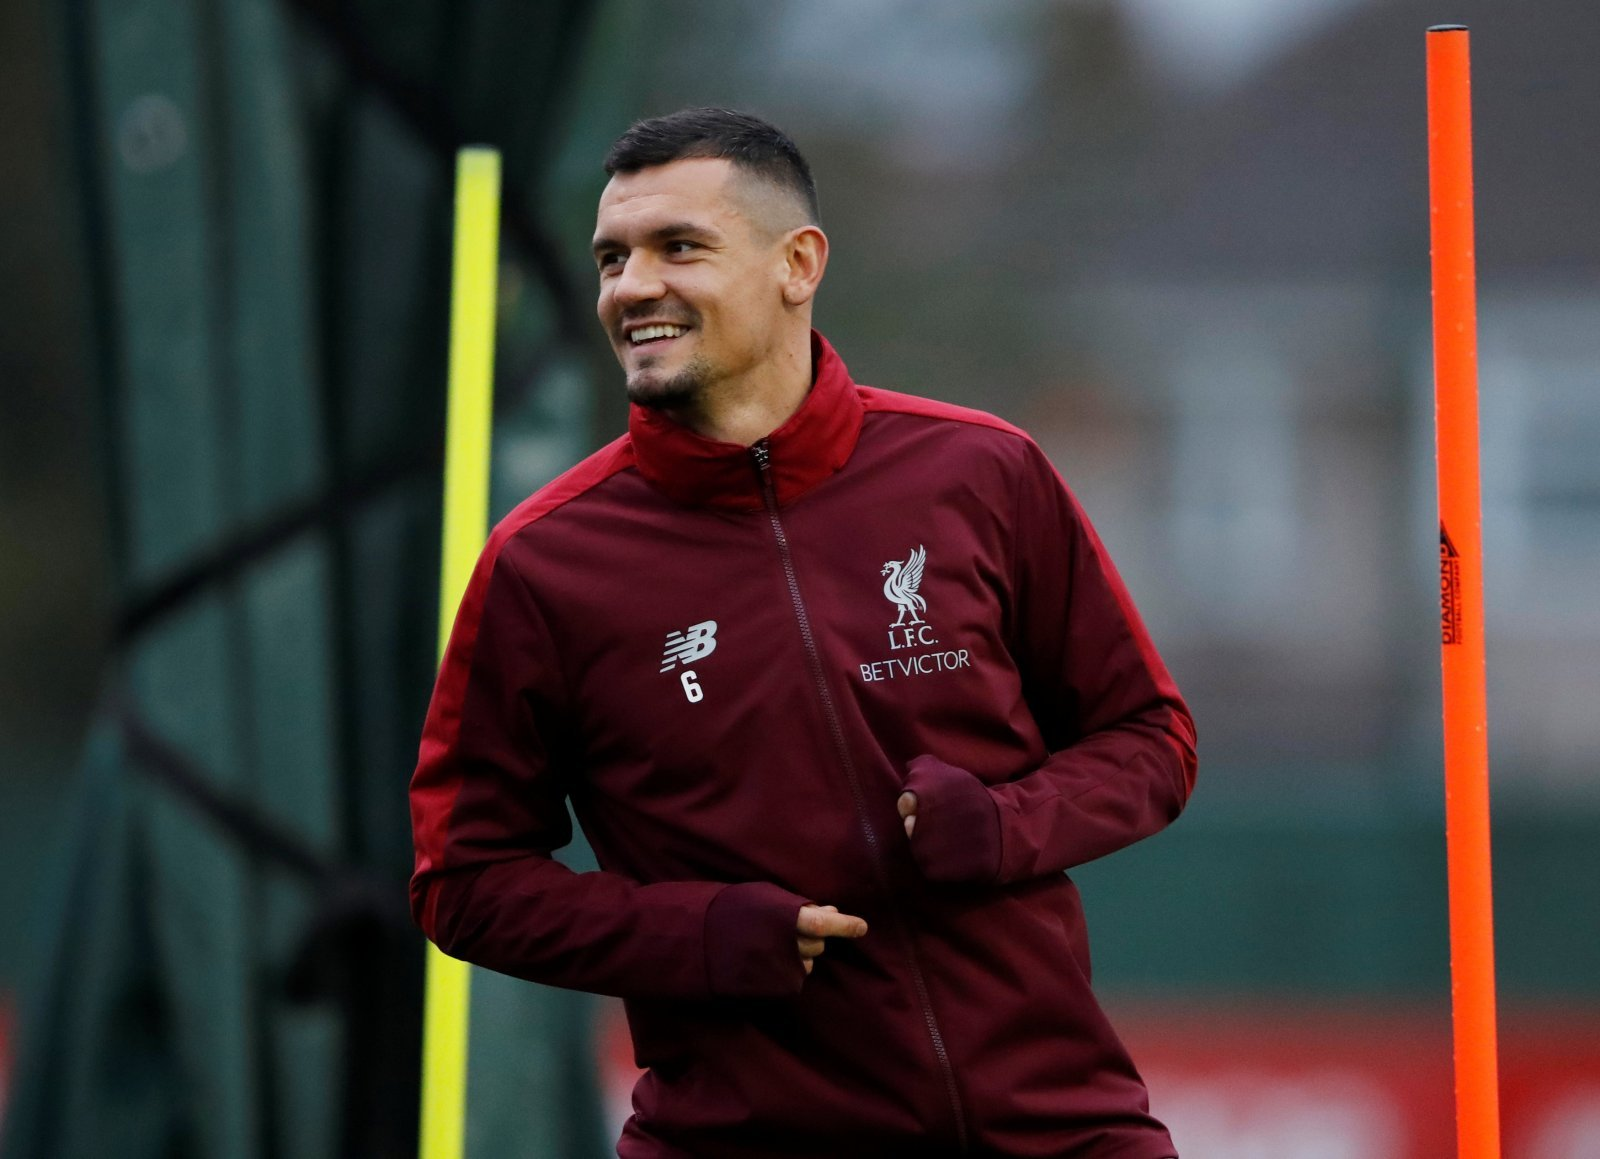 Liverpool: Dejan Lovren hasn't travelled with Reds squad for Super Cup